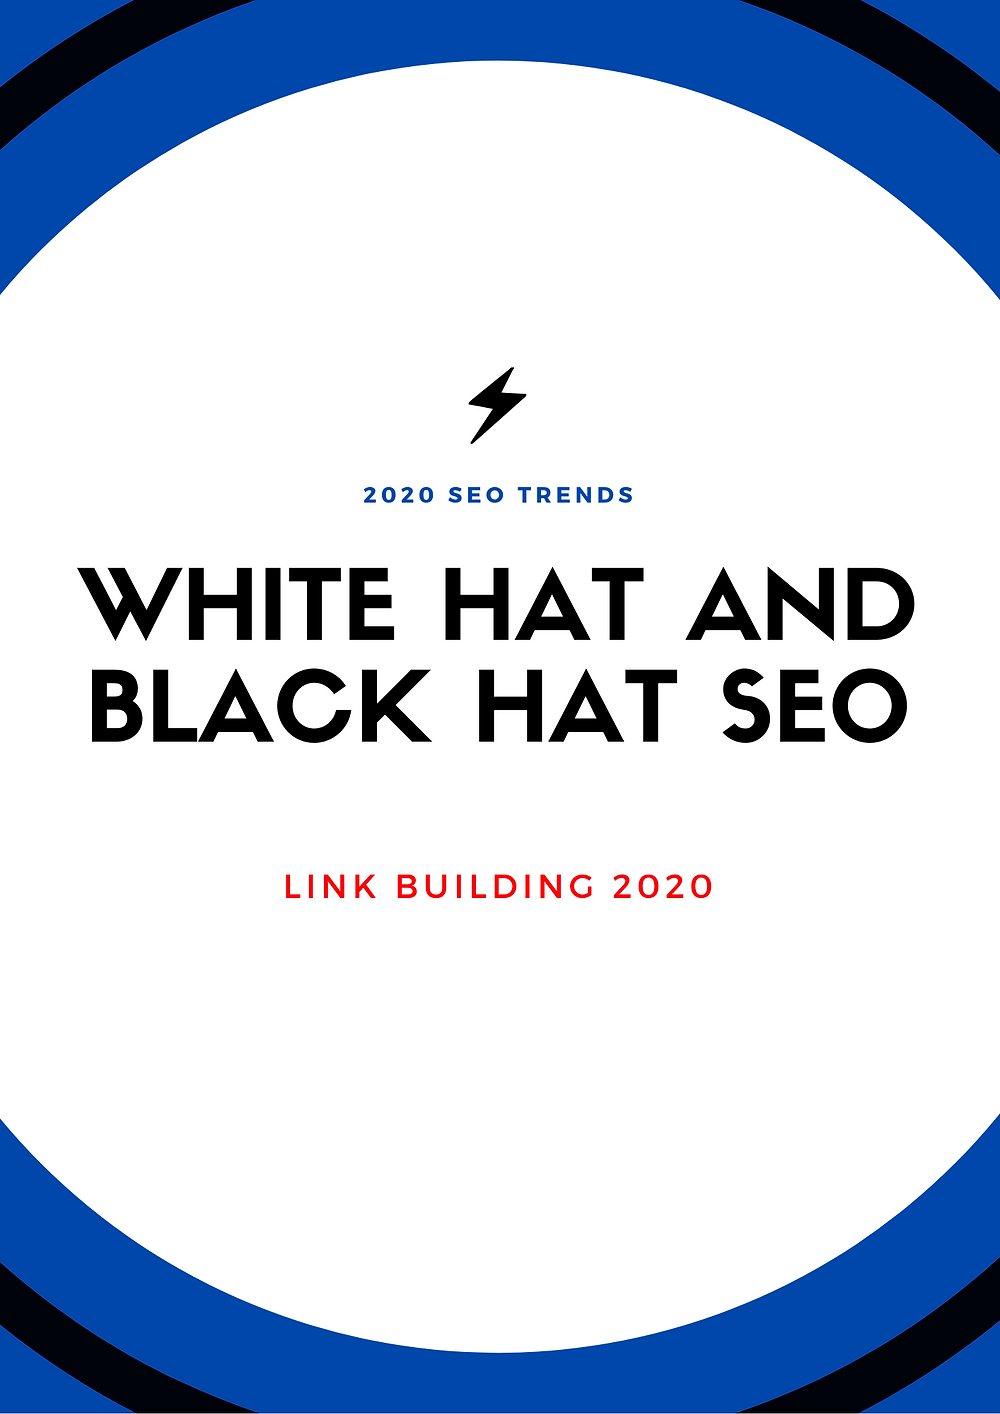 White Hat And Black Hat SEO Link Building 2020